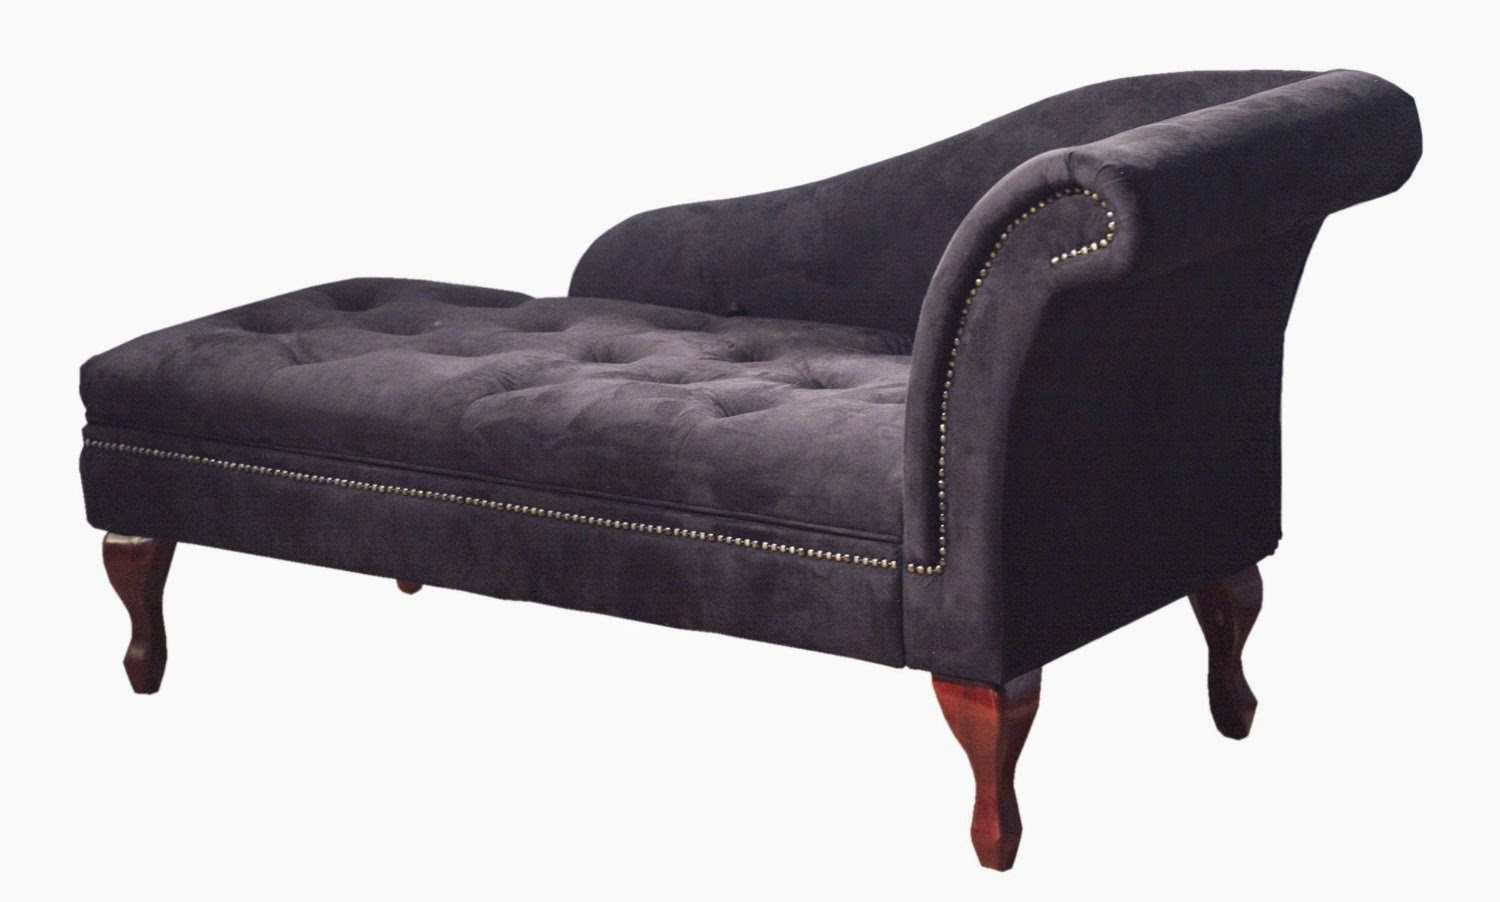 Vintage Couch Vintage Fainting Couch